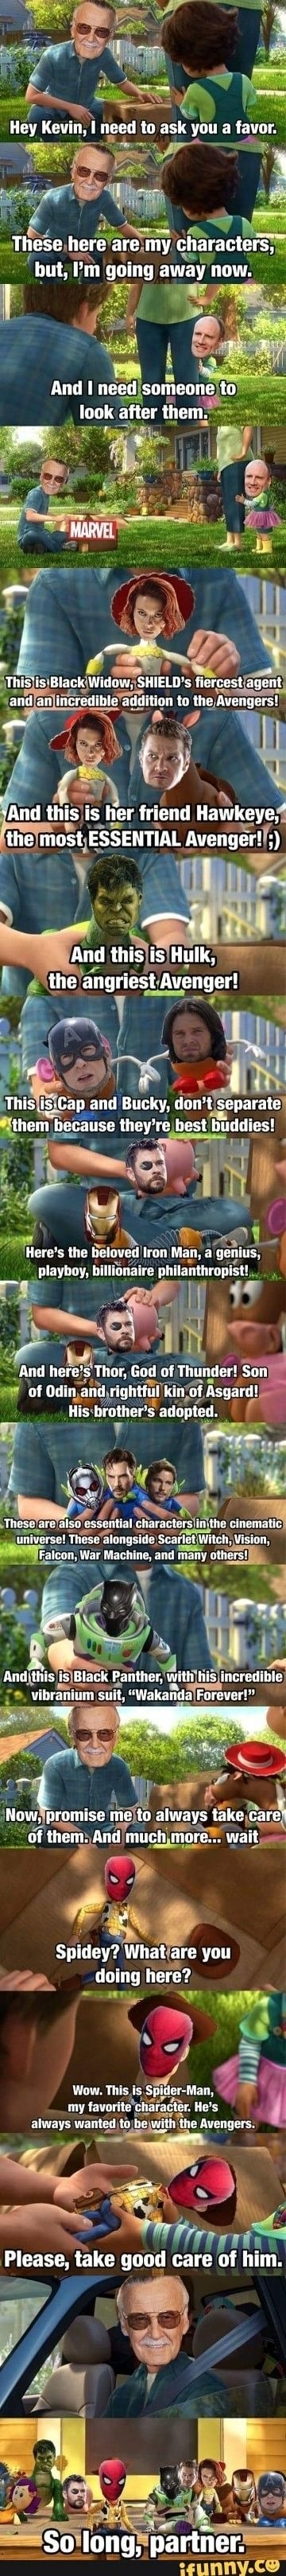 I'm not crying are you crying? Why are you crying? I'm not crying... #marveluniverse